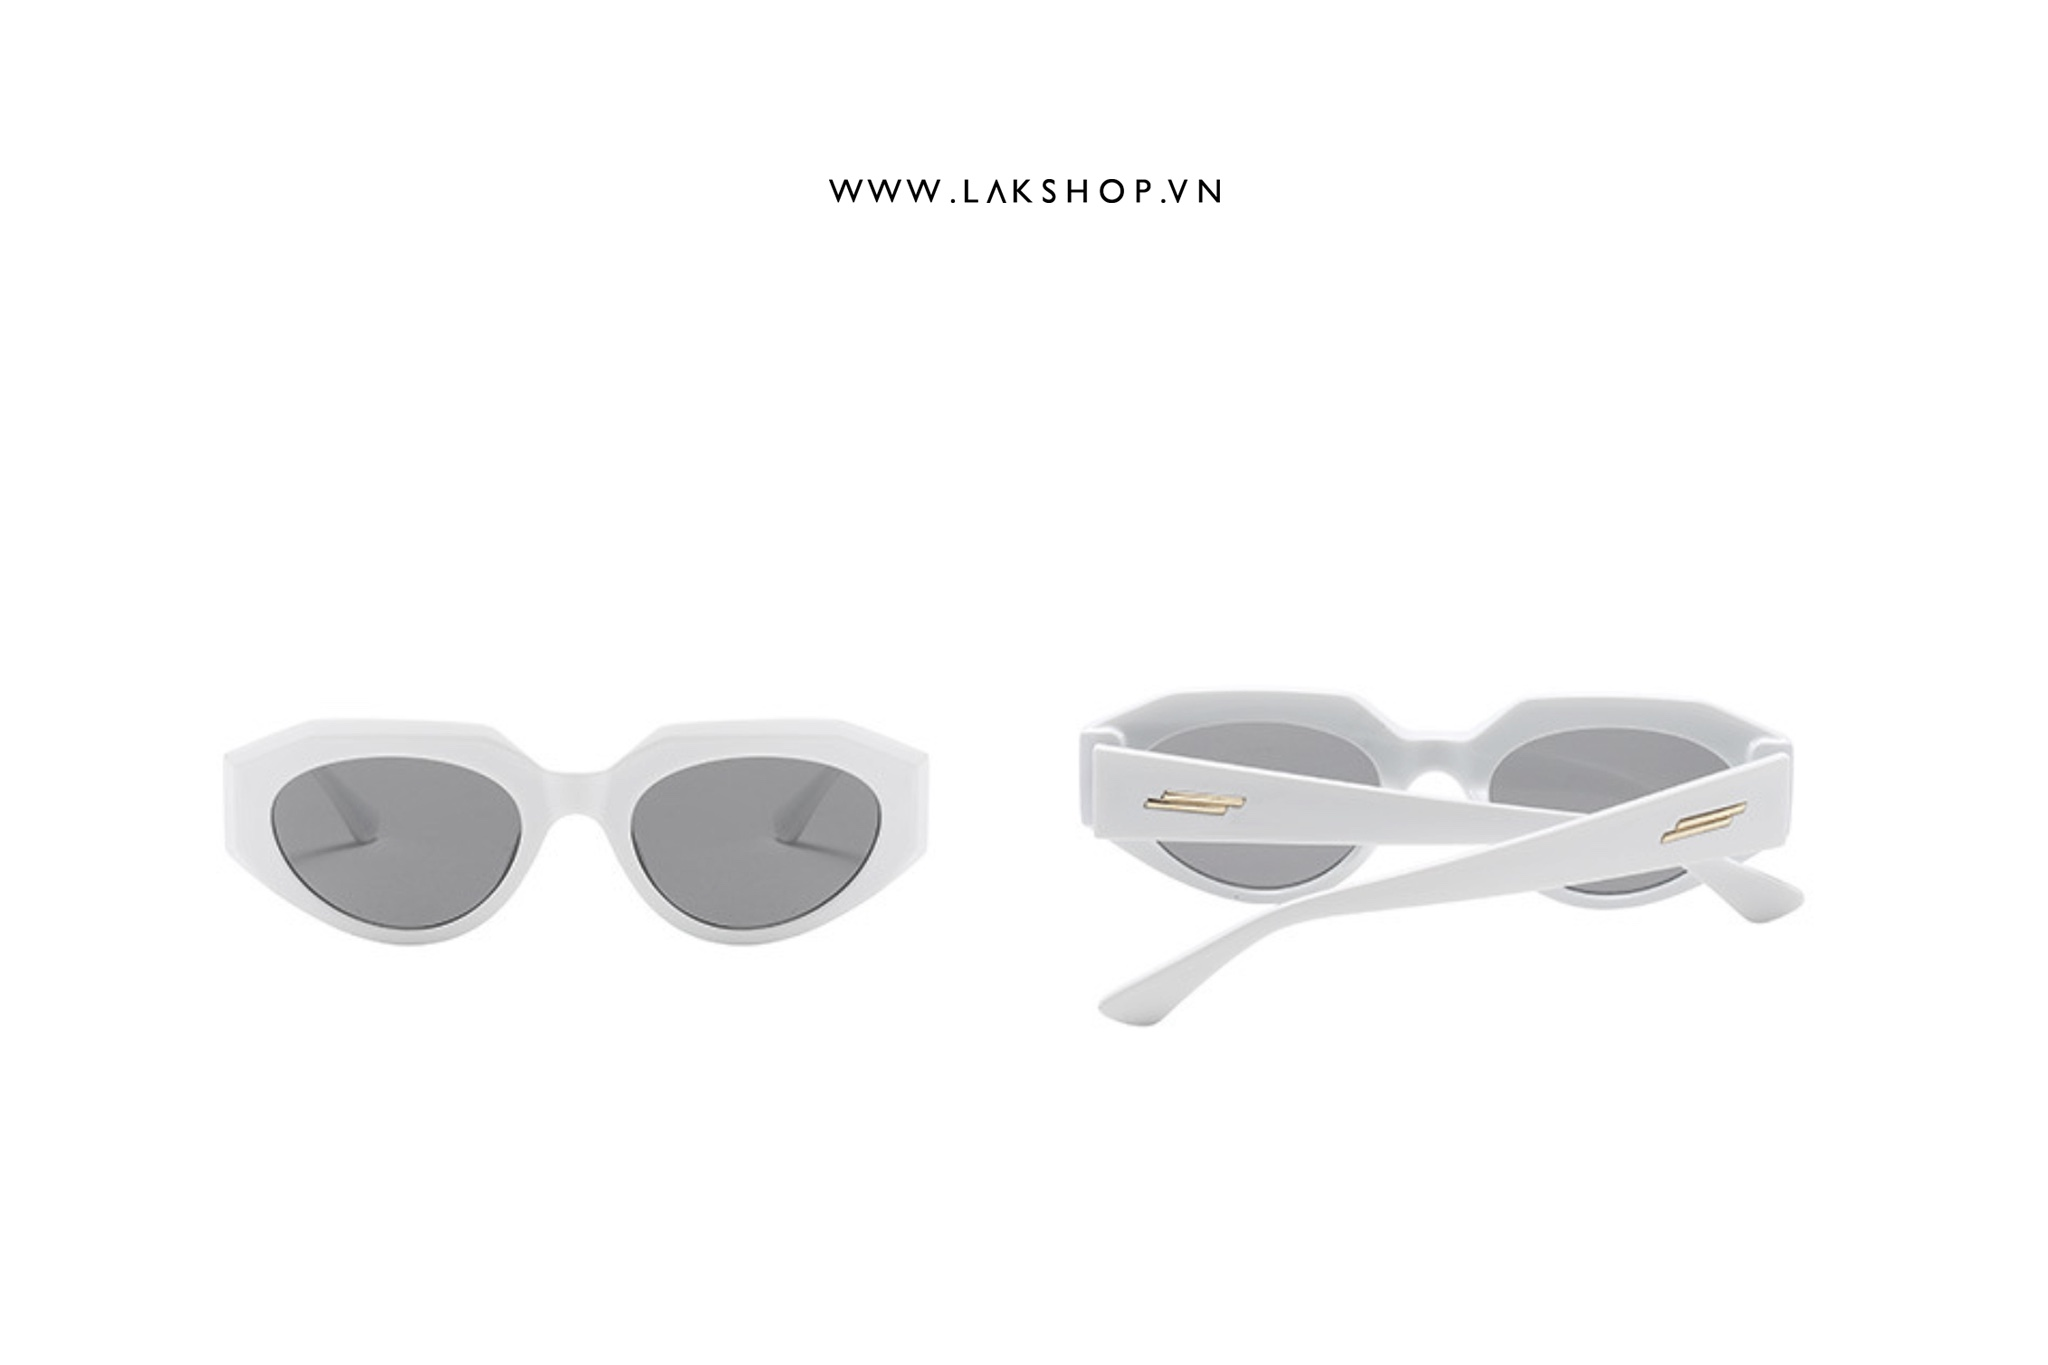 Kính White Hut Sunglasses